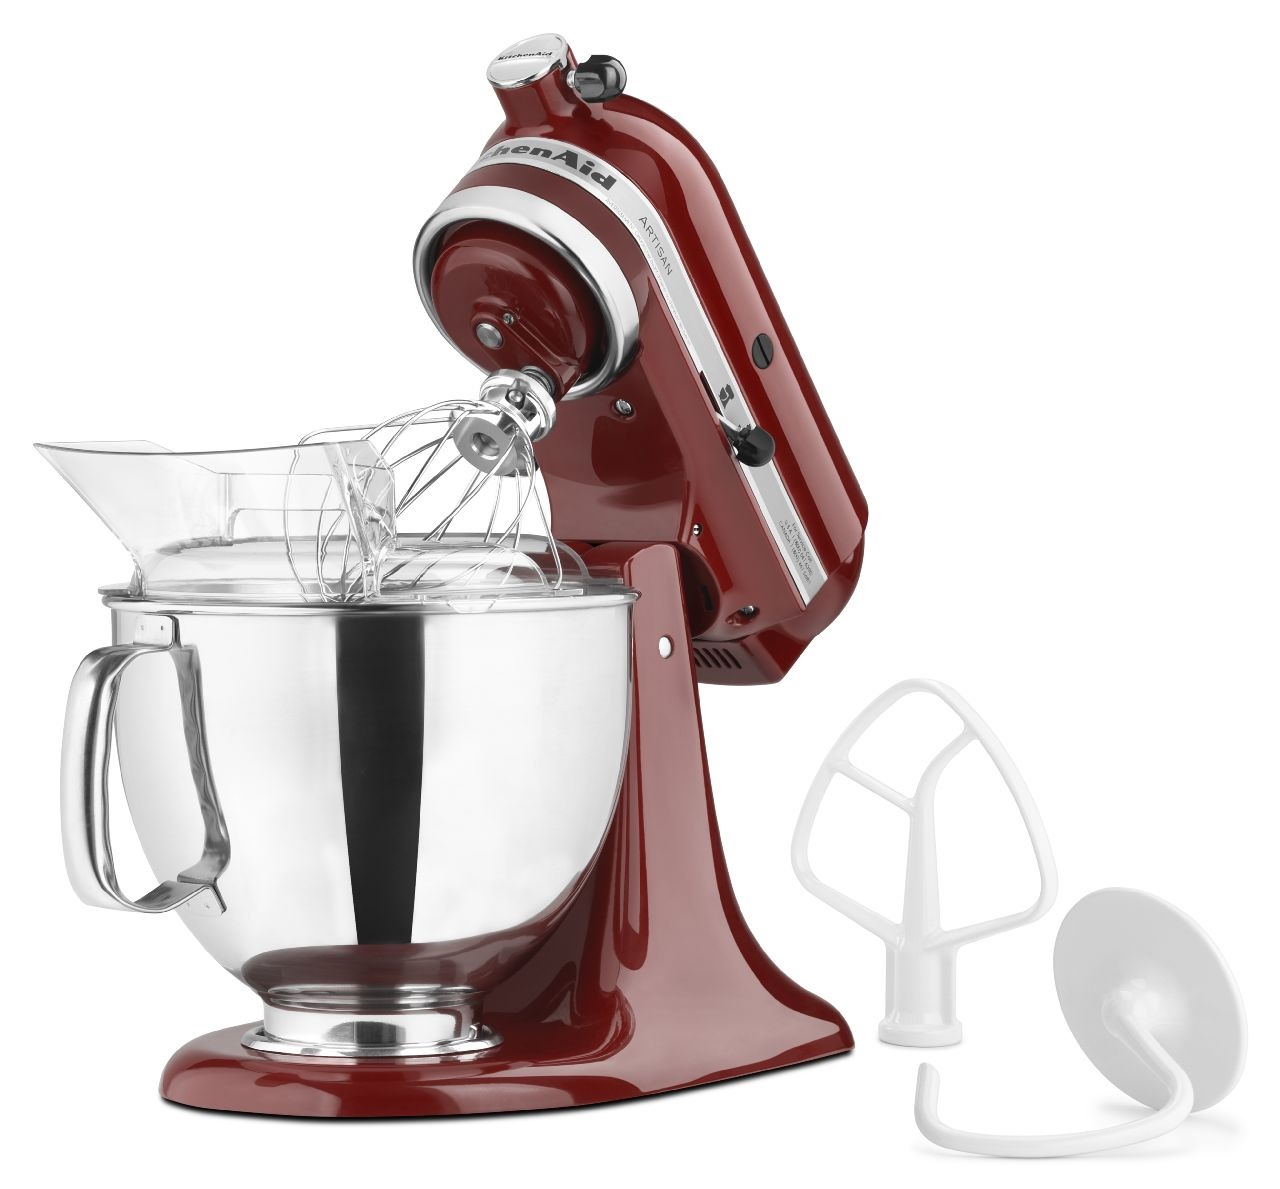 KitchenAid-Refurbished-Artisan-Series-5-Quart-Tilt-Head-Stand-Mixer-RRK150 thumbnail 48